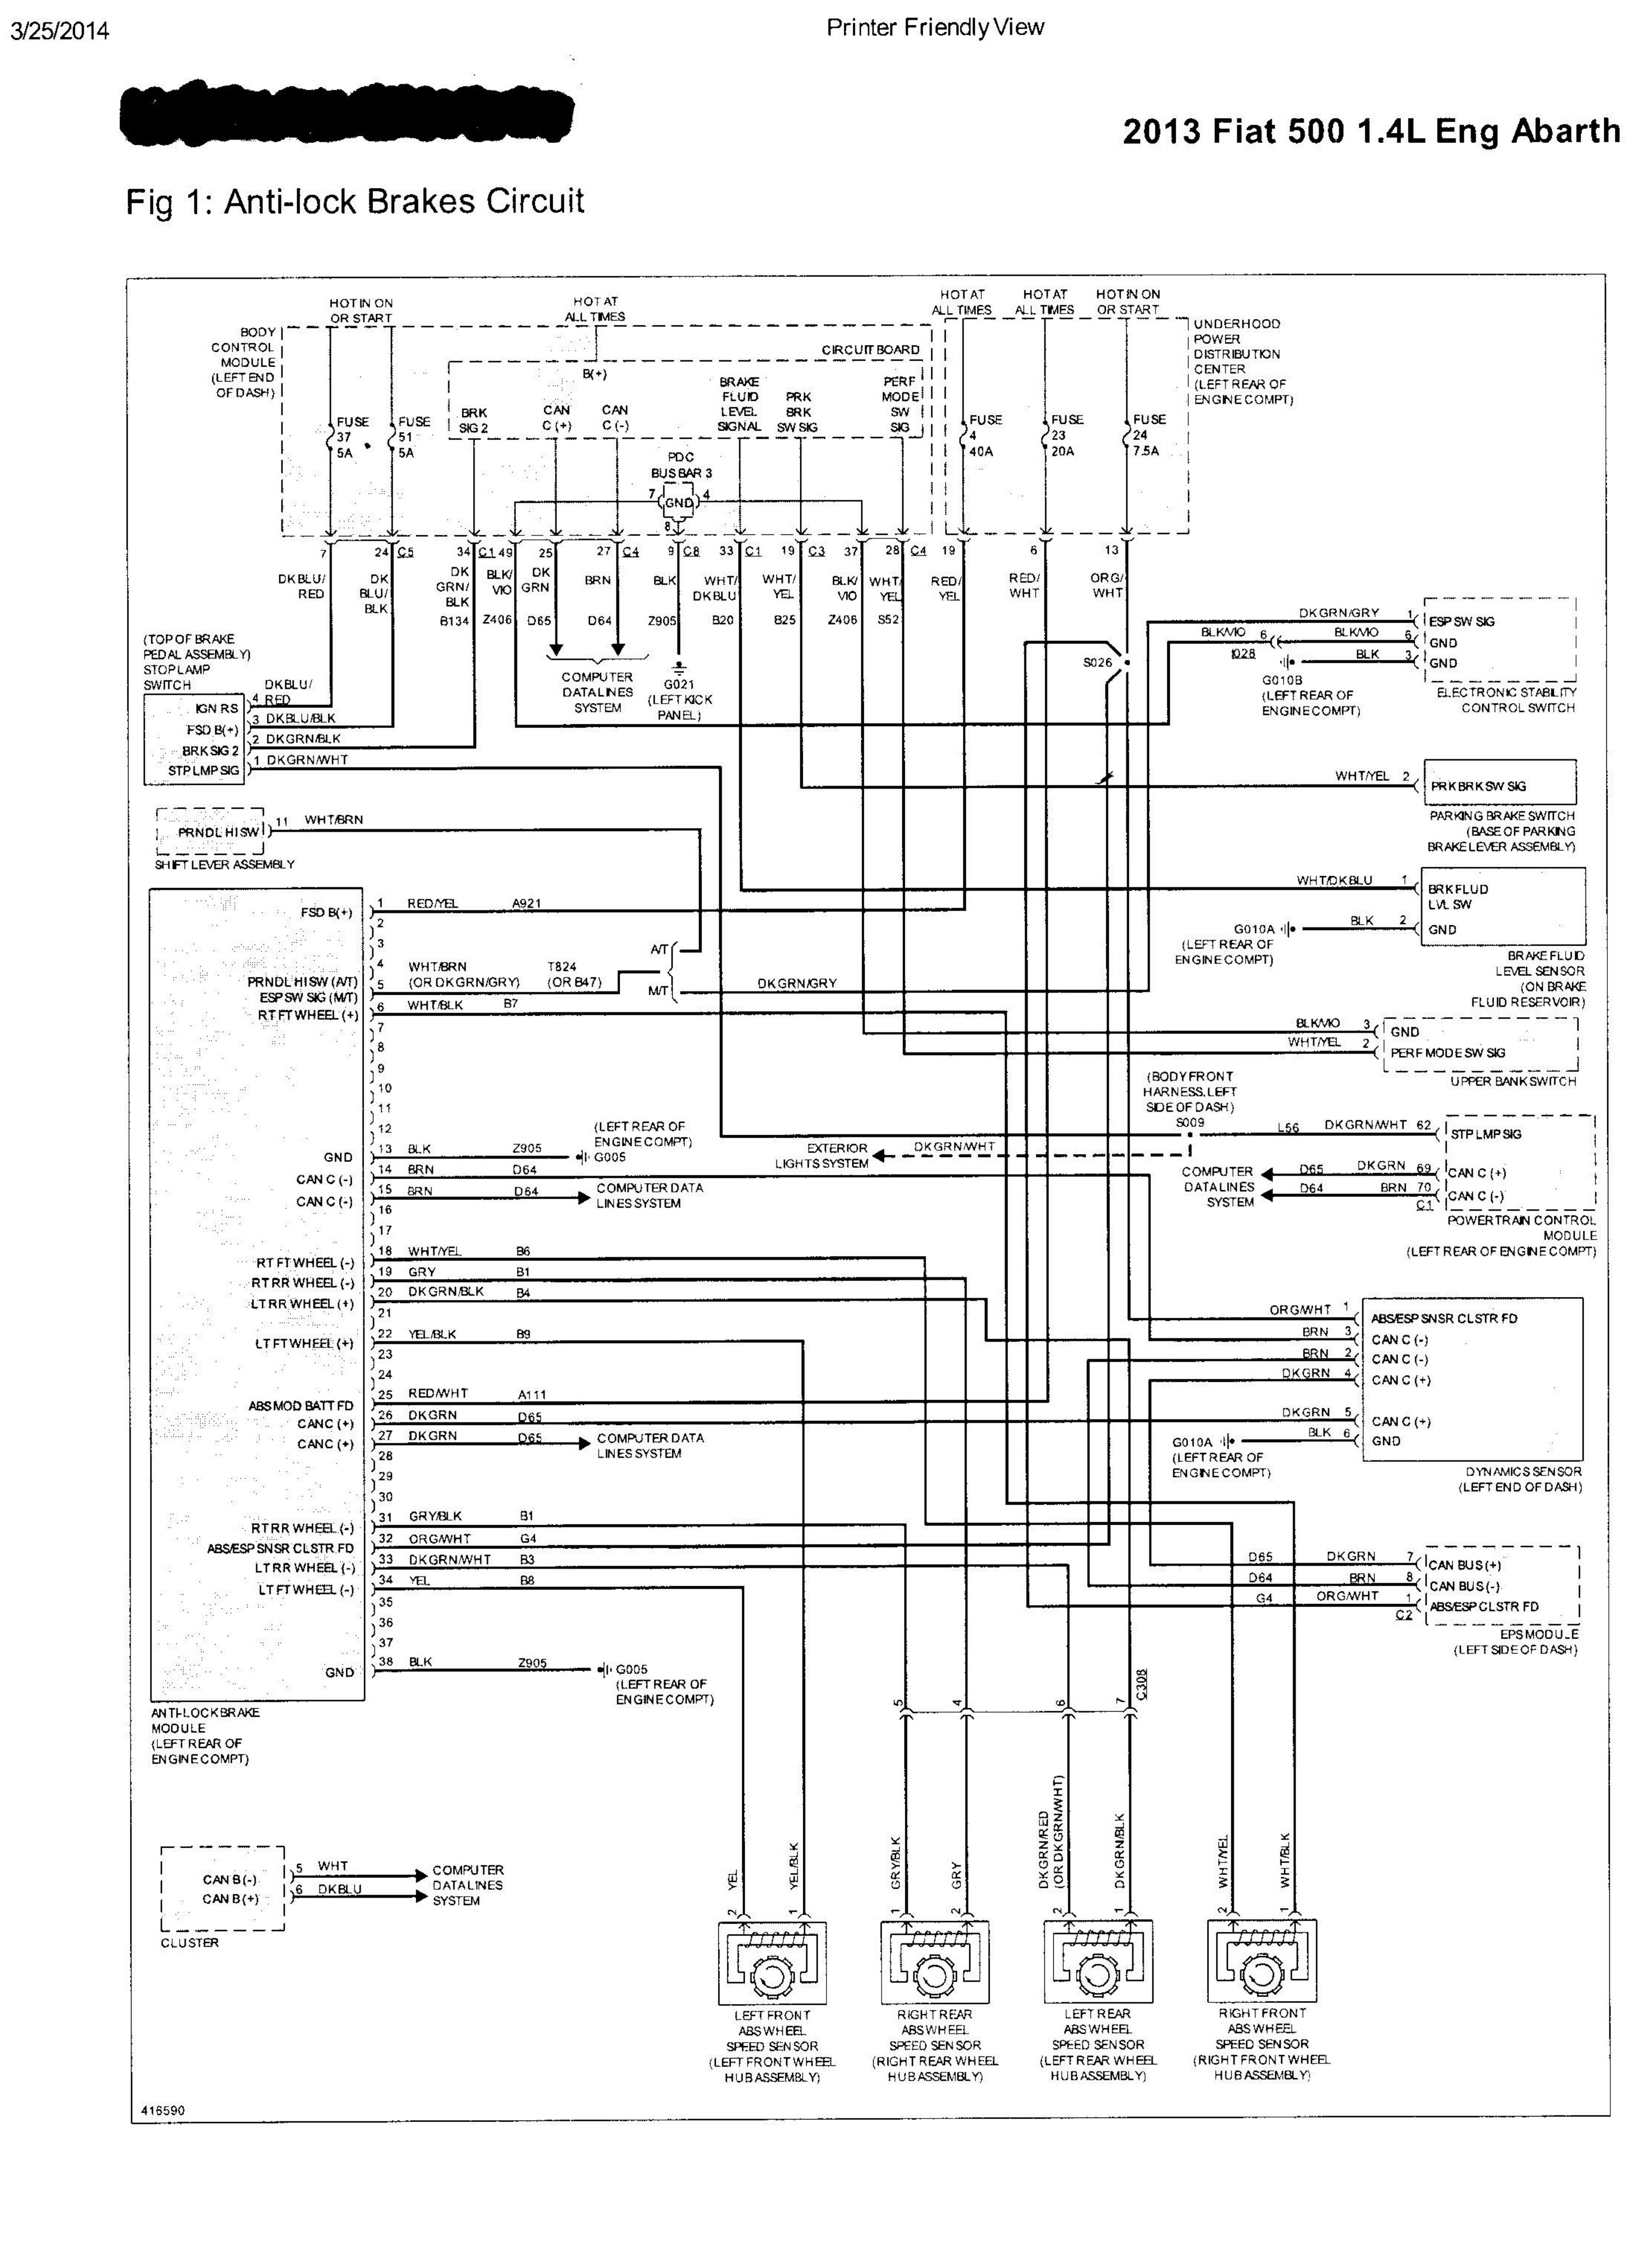 Abarth 500 Misc Documents Wiring Diagrams